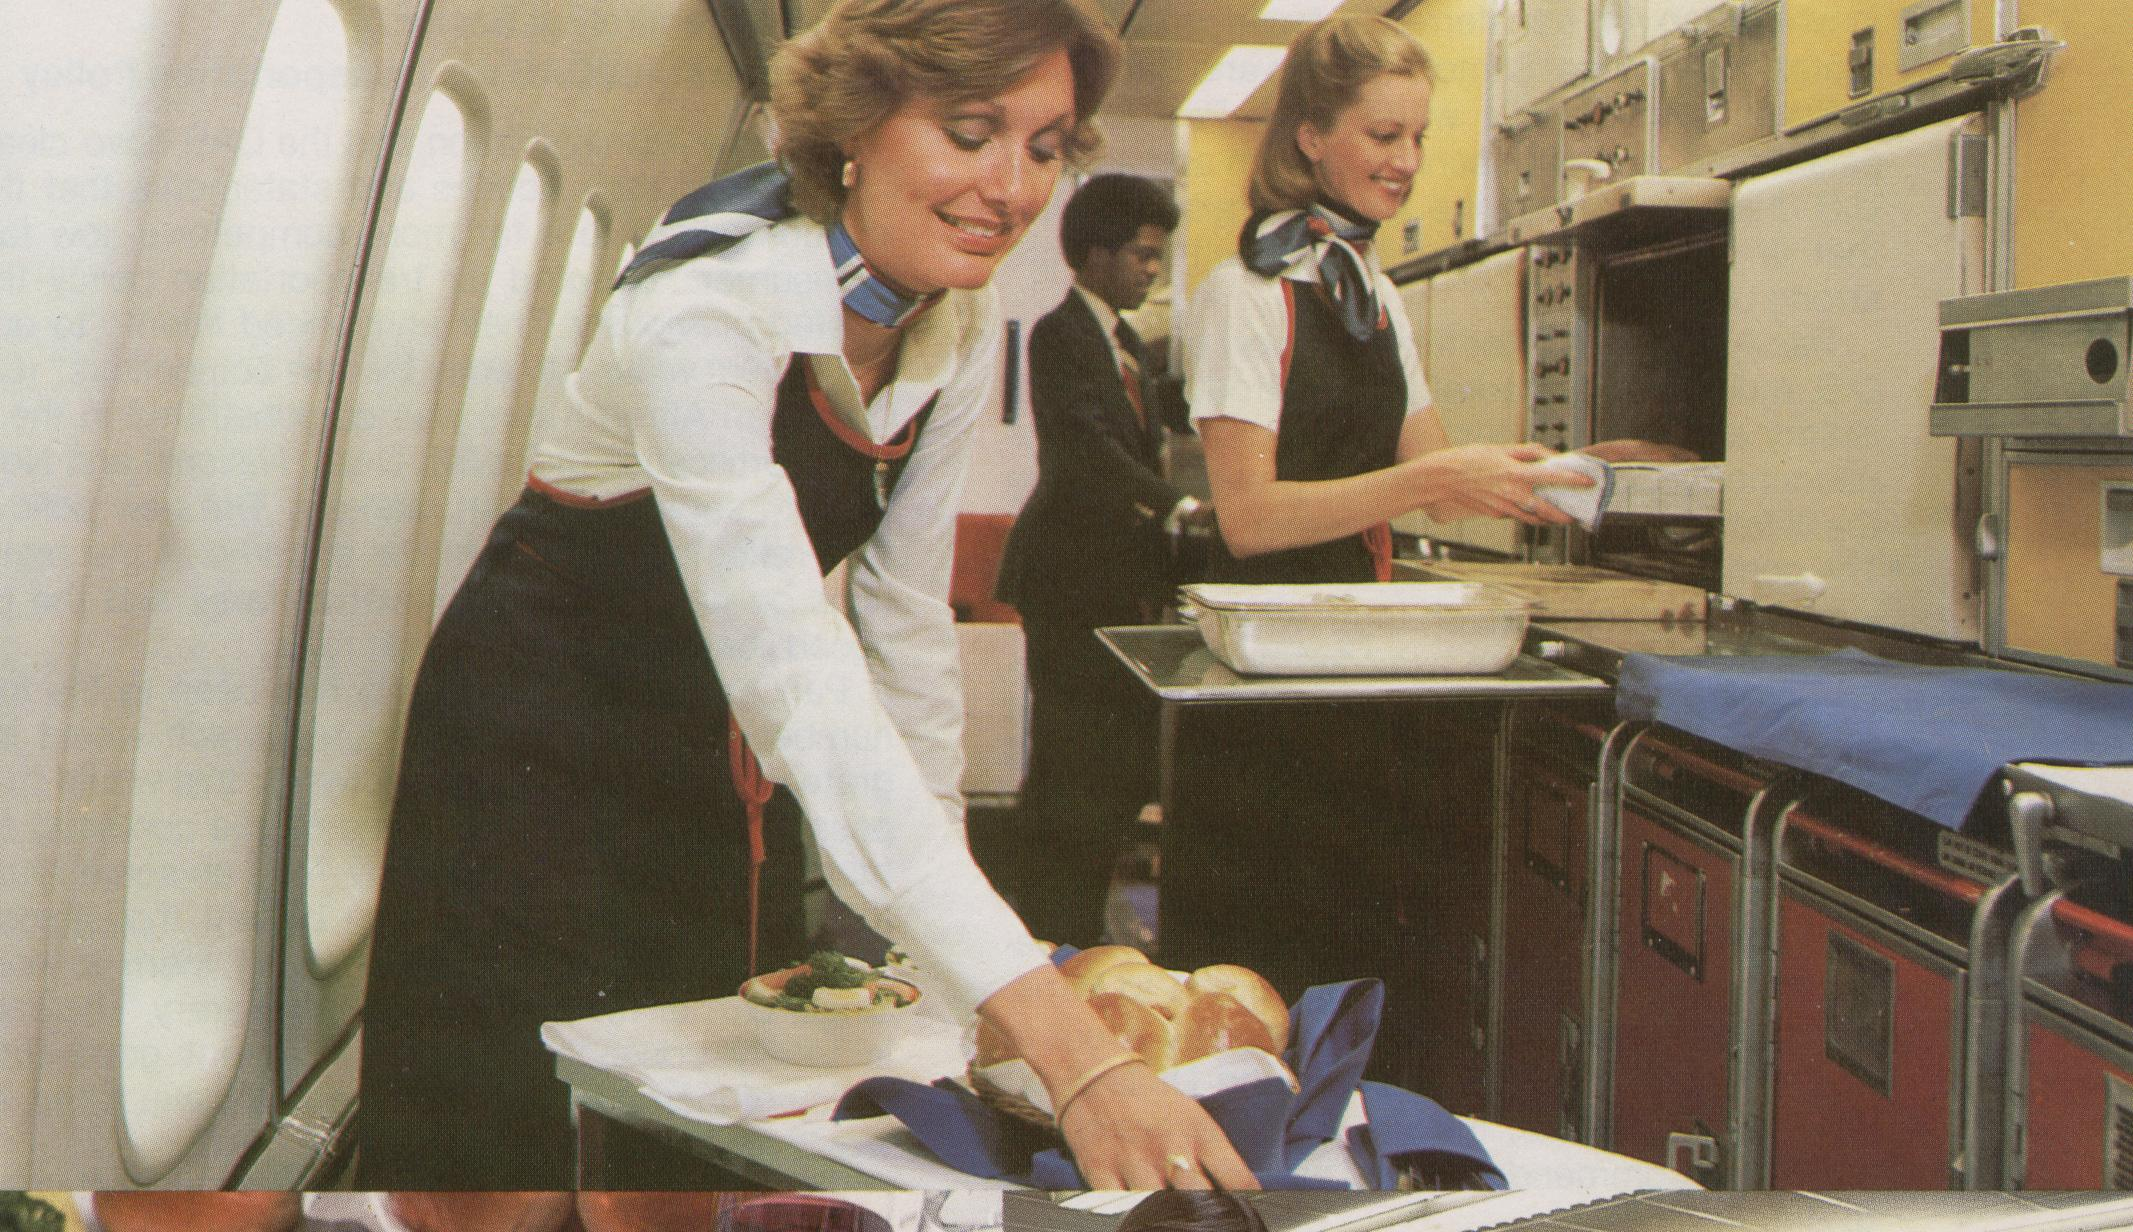 1977,  Flight Attendants preparing to serve an elaborate First Class meal in the galley of a Pan Am Boeing 747SP.  Sue Smith is preparing the serving cart.  Judy Skartvedt is standing by the open oven and Antonio Gooding is working at the back of the galley.